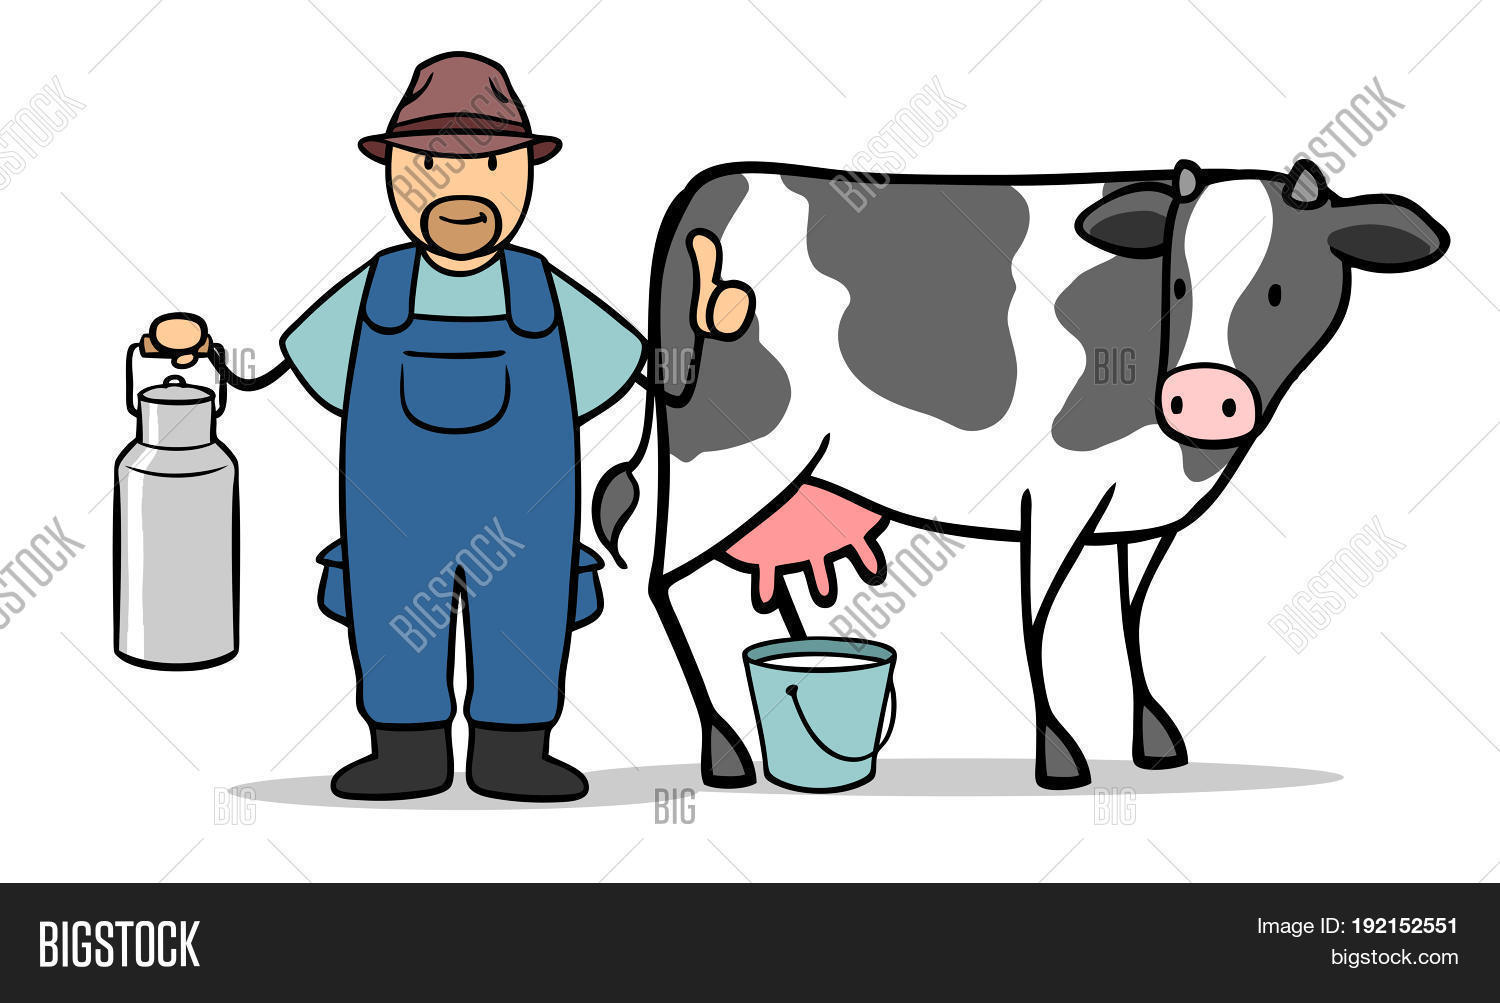 Cartoon Farmer Cow Image Photo Free Trial Bigstock